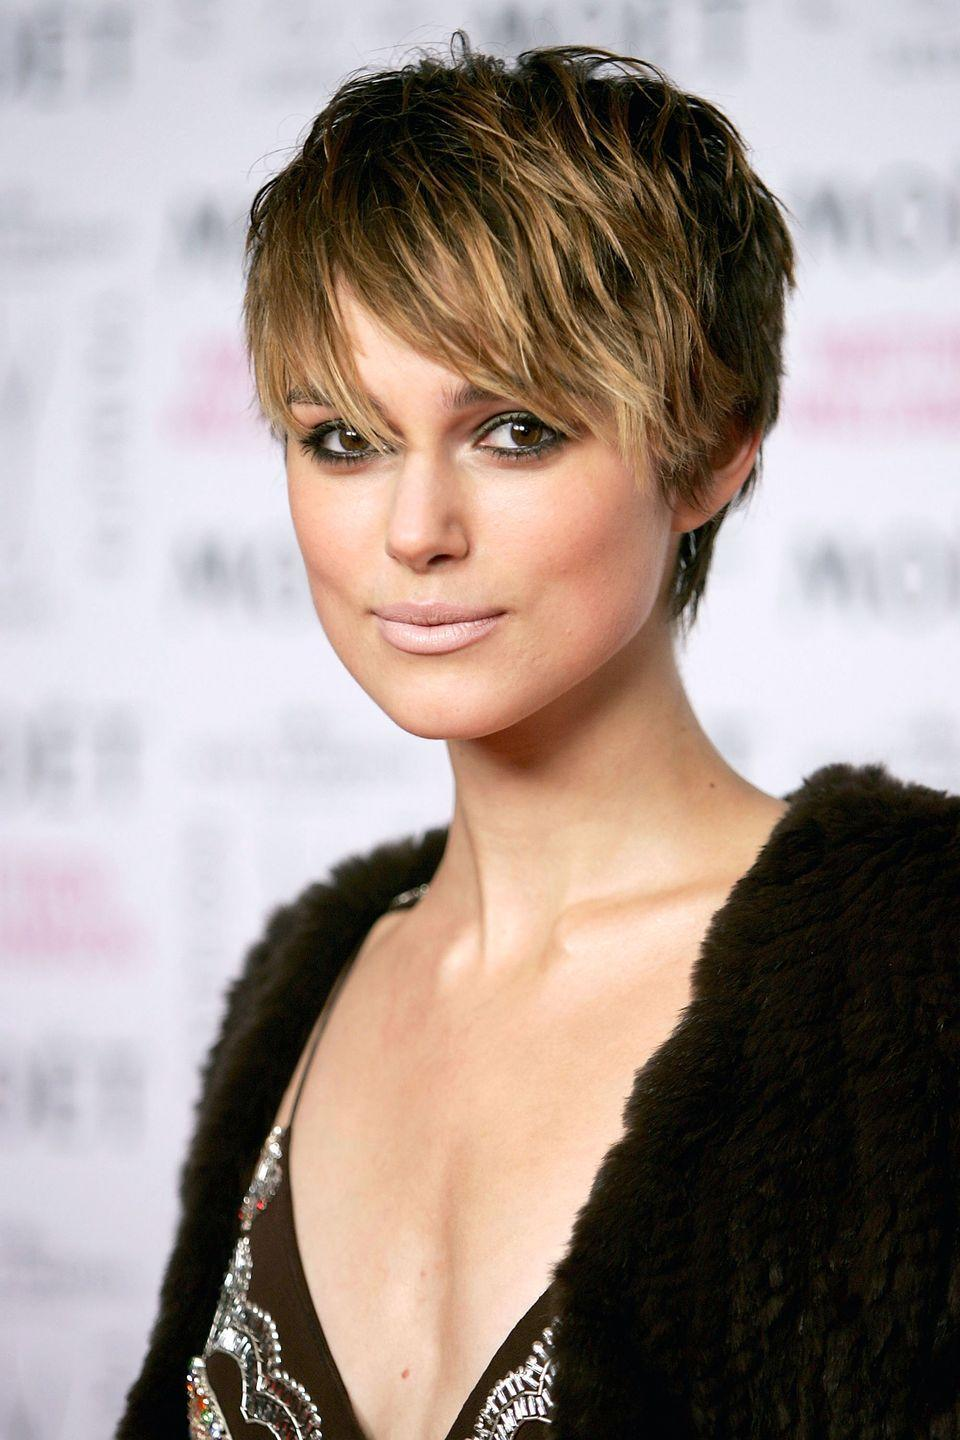 <p>Actress Kiera Knightley goes full-on cool-girl with textured bangs and short layers.</p>